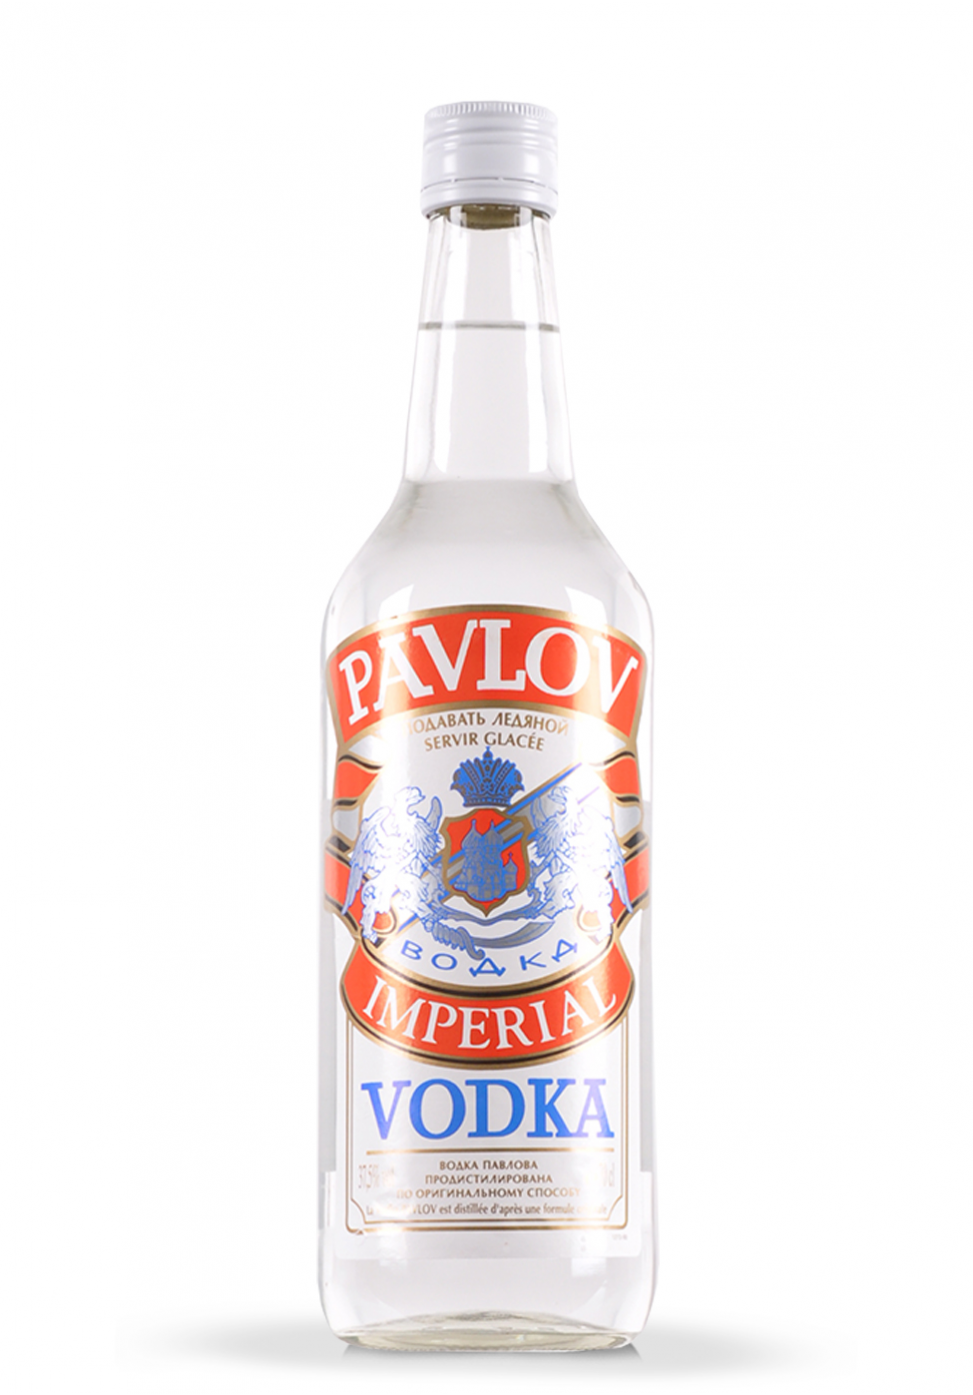 Vodka Pavlov Imperial (0.7L) - SmartDrinks.ro